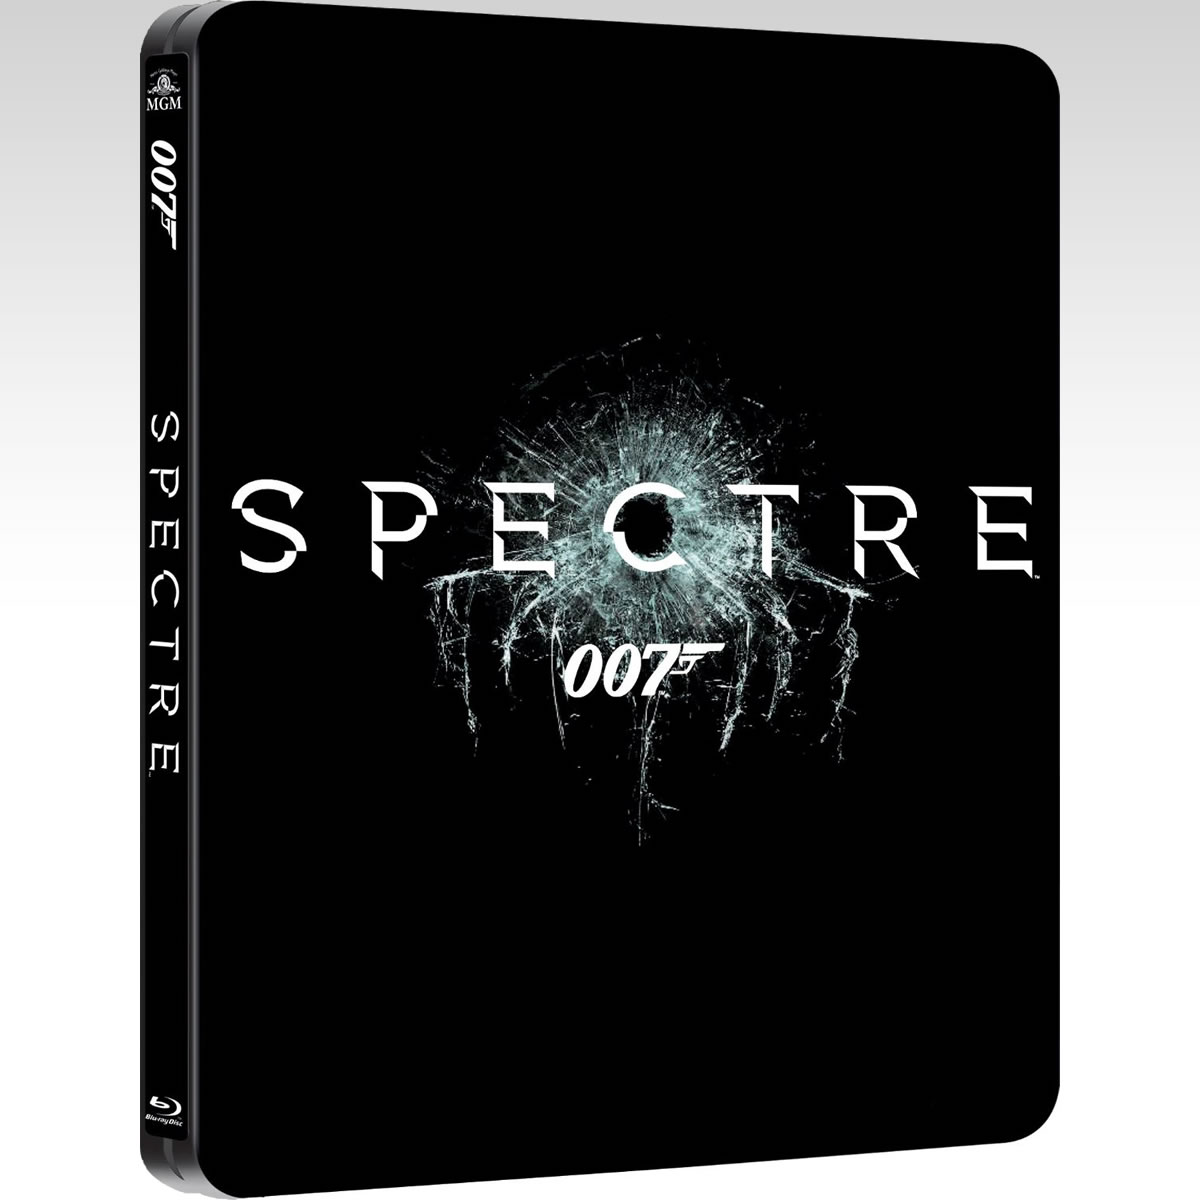 JAMES BOND: SPECTRE Limited Edition Steelbook (BLU-RAY)